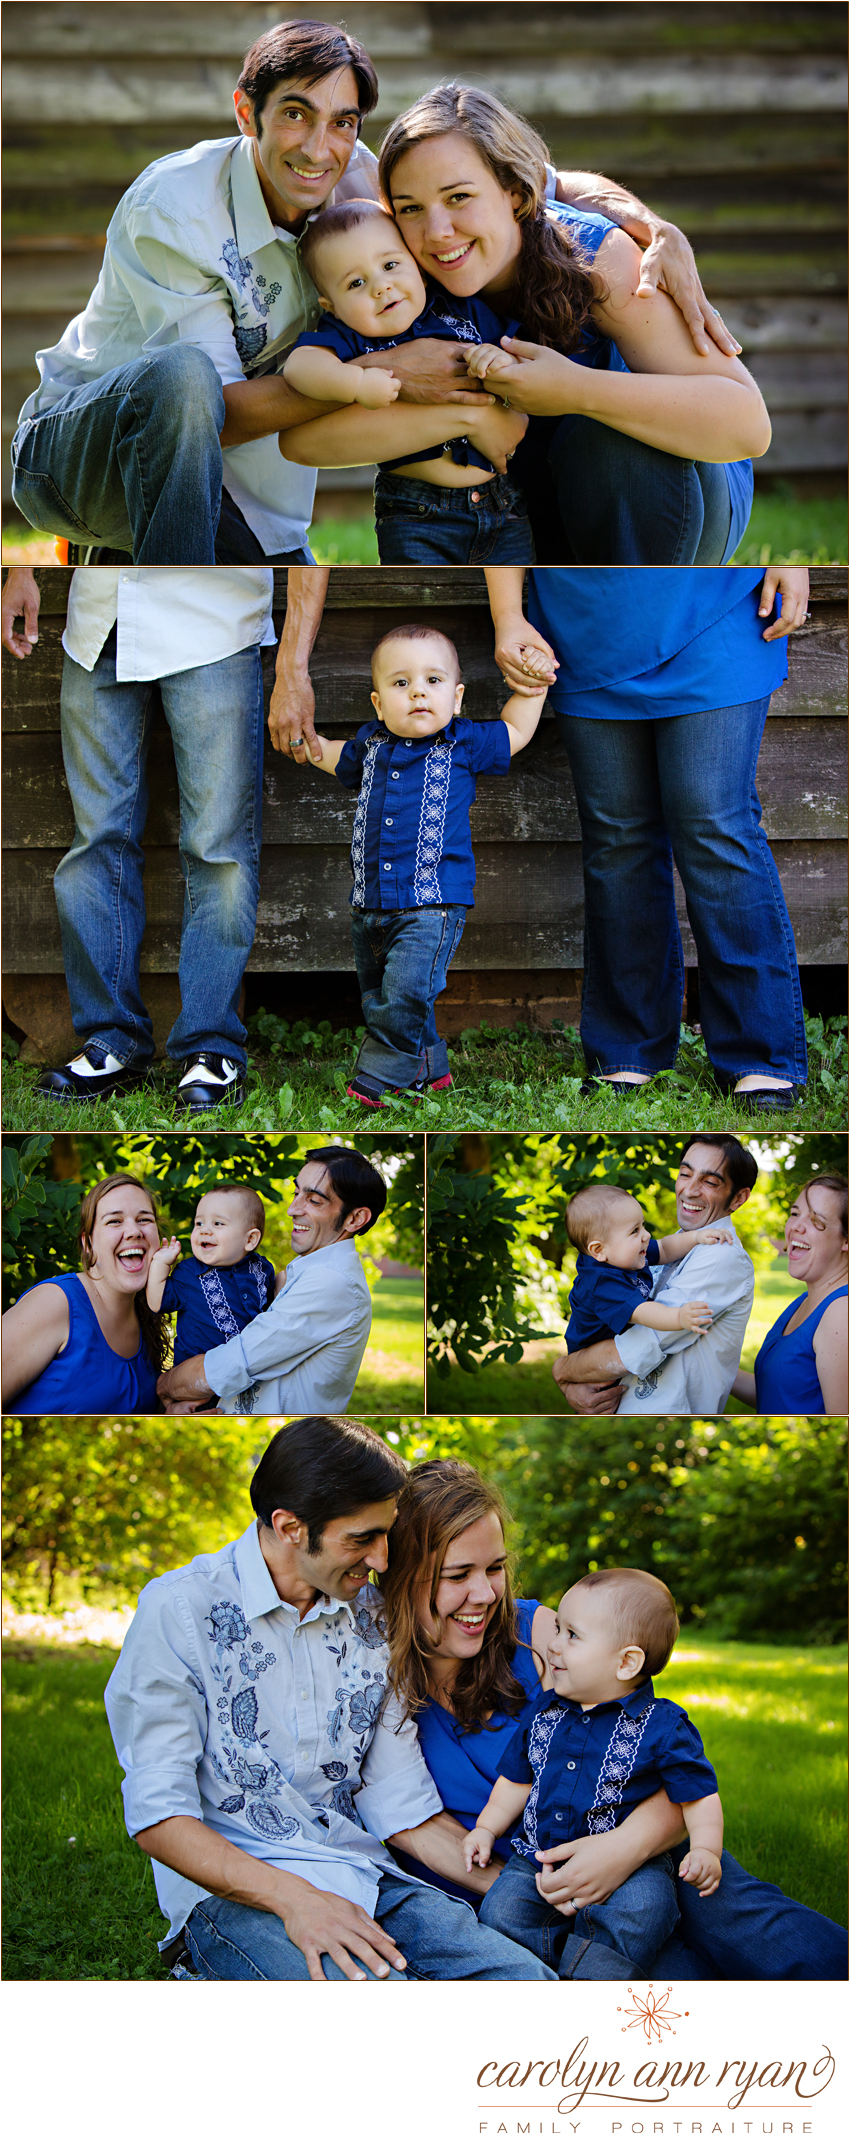 Weddington, North Carolina Child and Family Photographer Carolyn Ann Ryan captures portraits of an adorable family